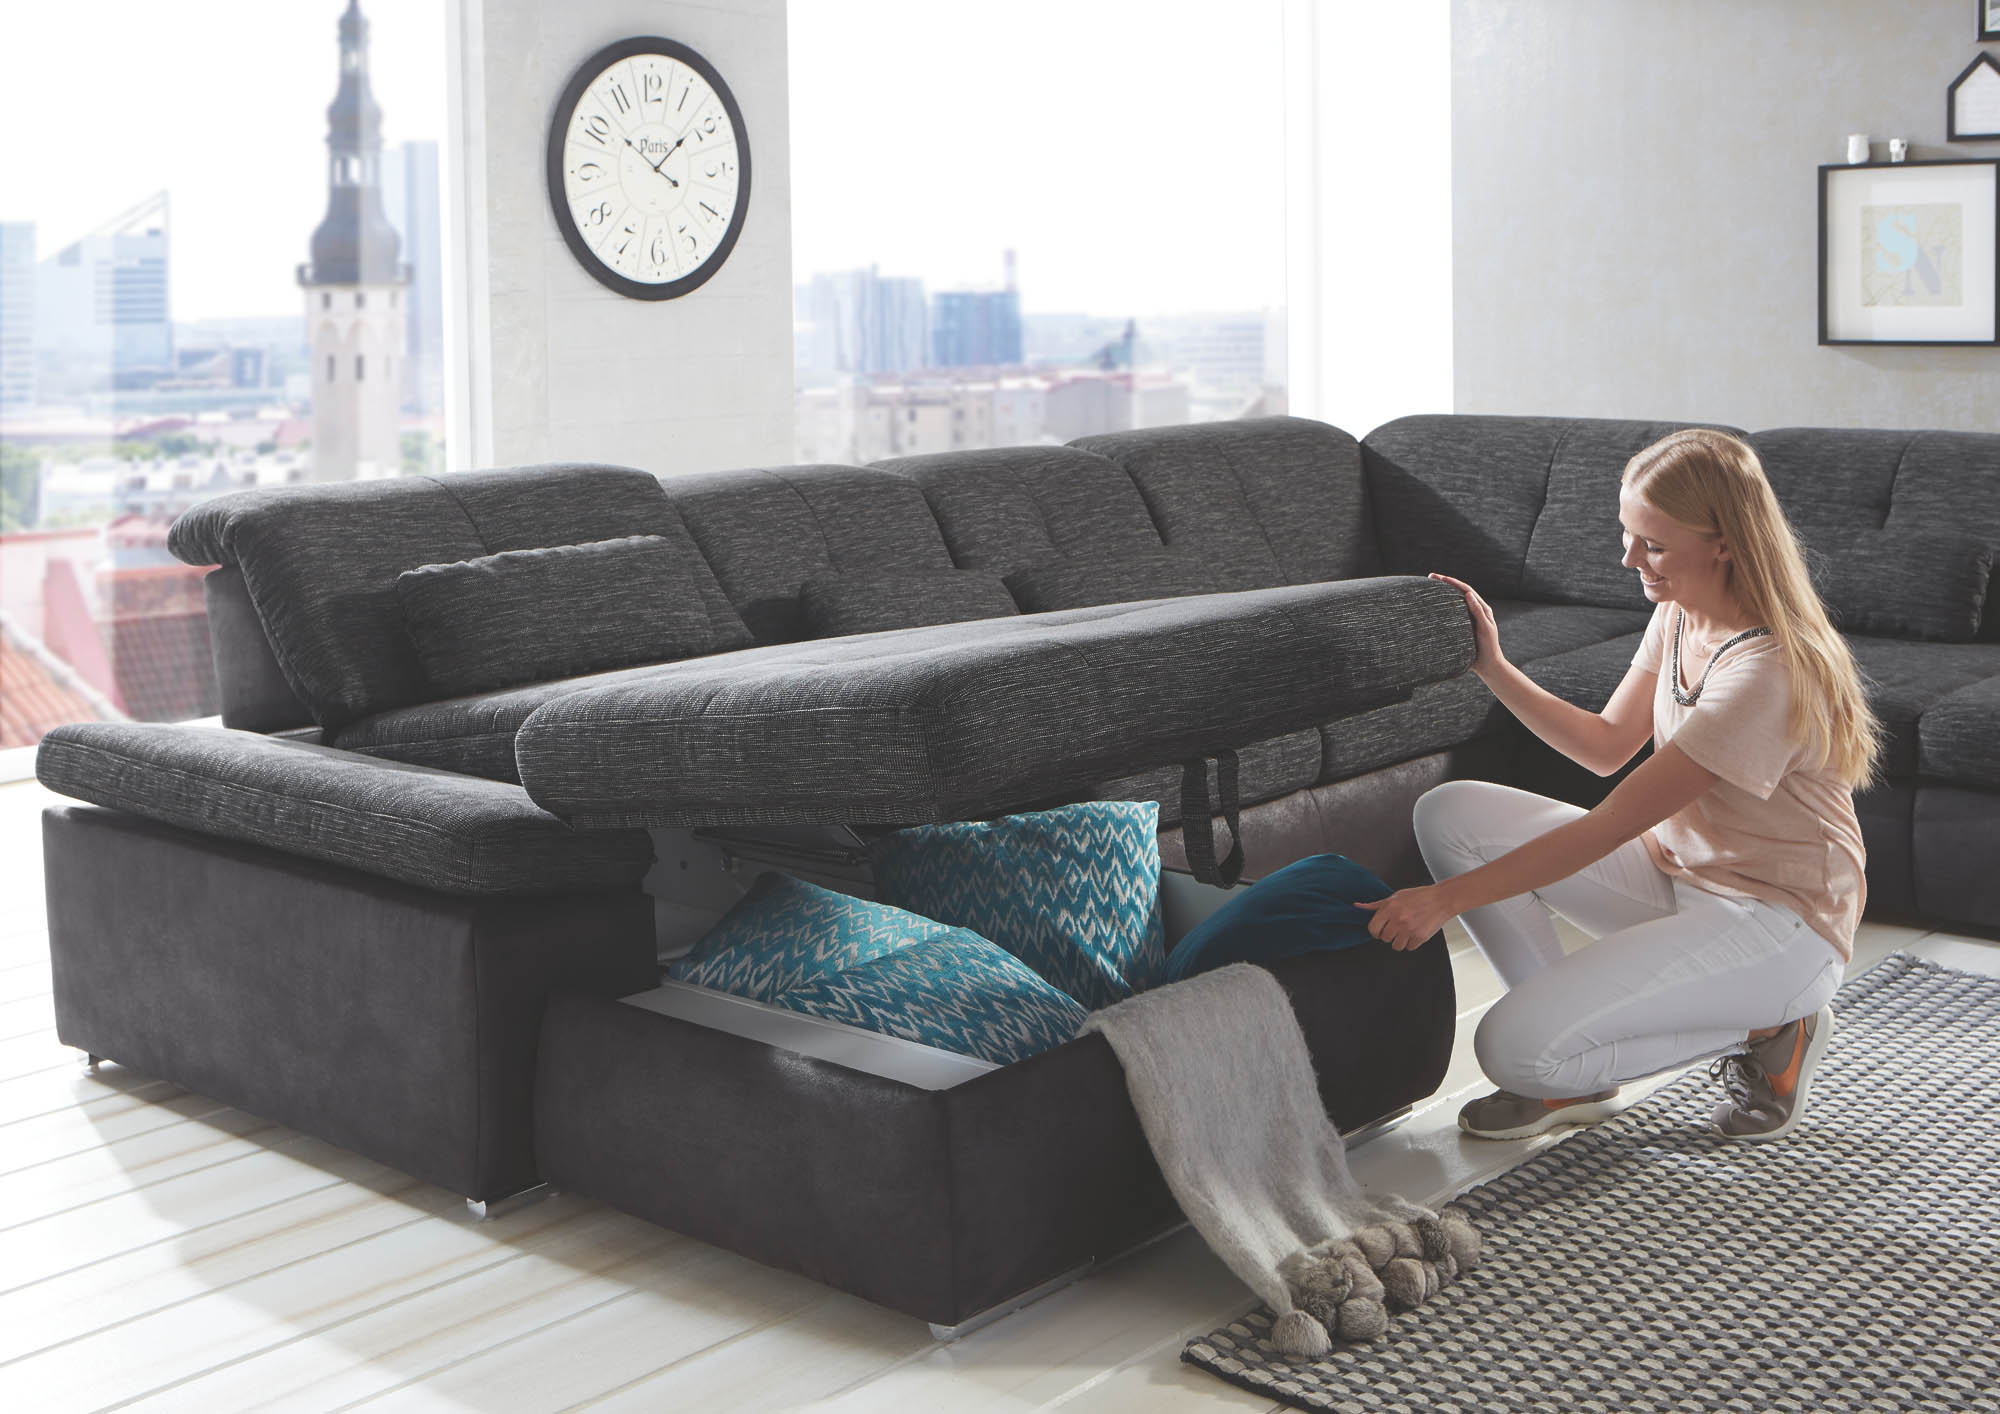 Full Size of Megapol Sofa Stadion Couch Argo Satellite Message Push Judy Konfigurator Armstrong Stage Mit Led Relaxfunktion Elektrisch Creme Kleines Wohnzimmer Husse Sofa Megapol Sofa